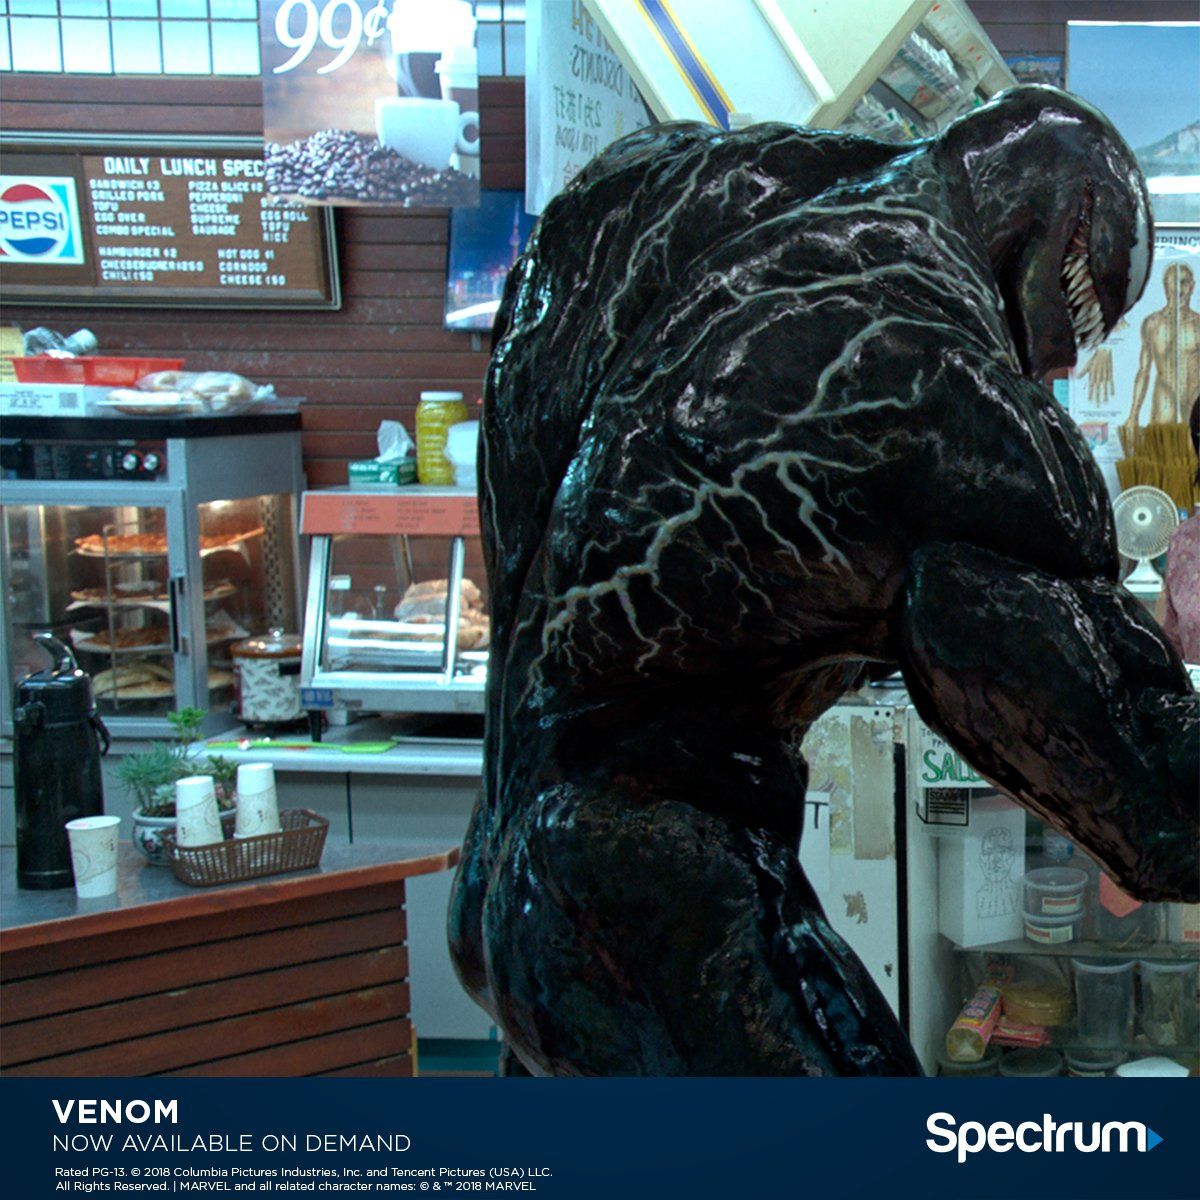 Something new has invaded—catch #ThePredator and #Venom, now available On Demand. @Predator @VenomMovie